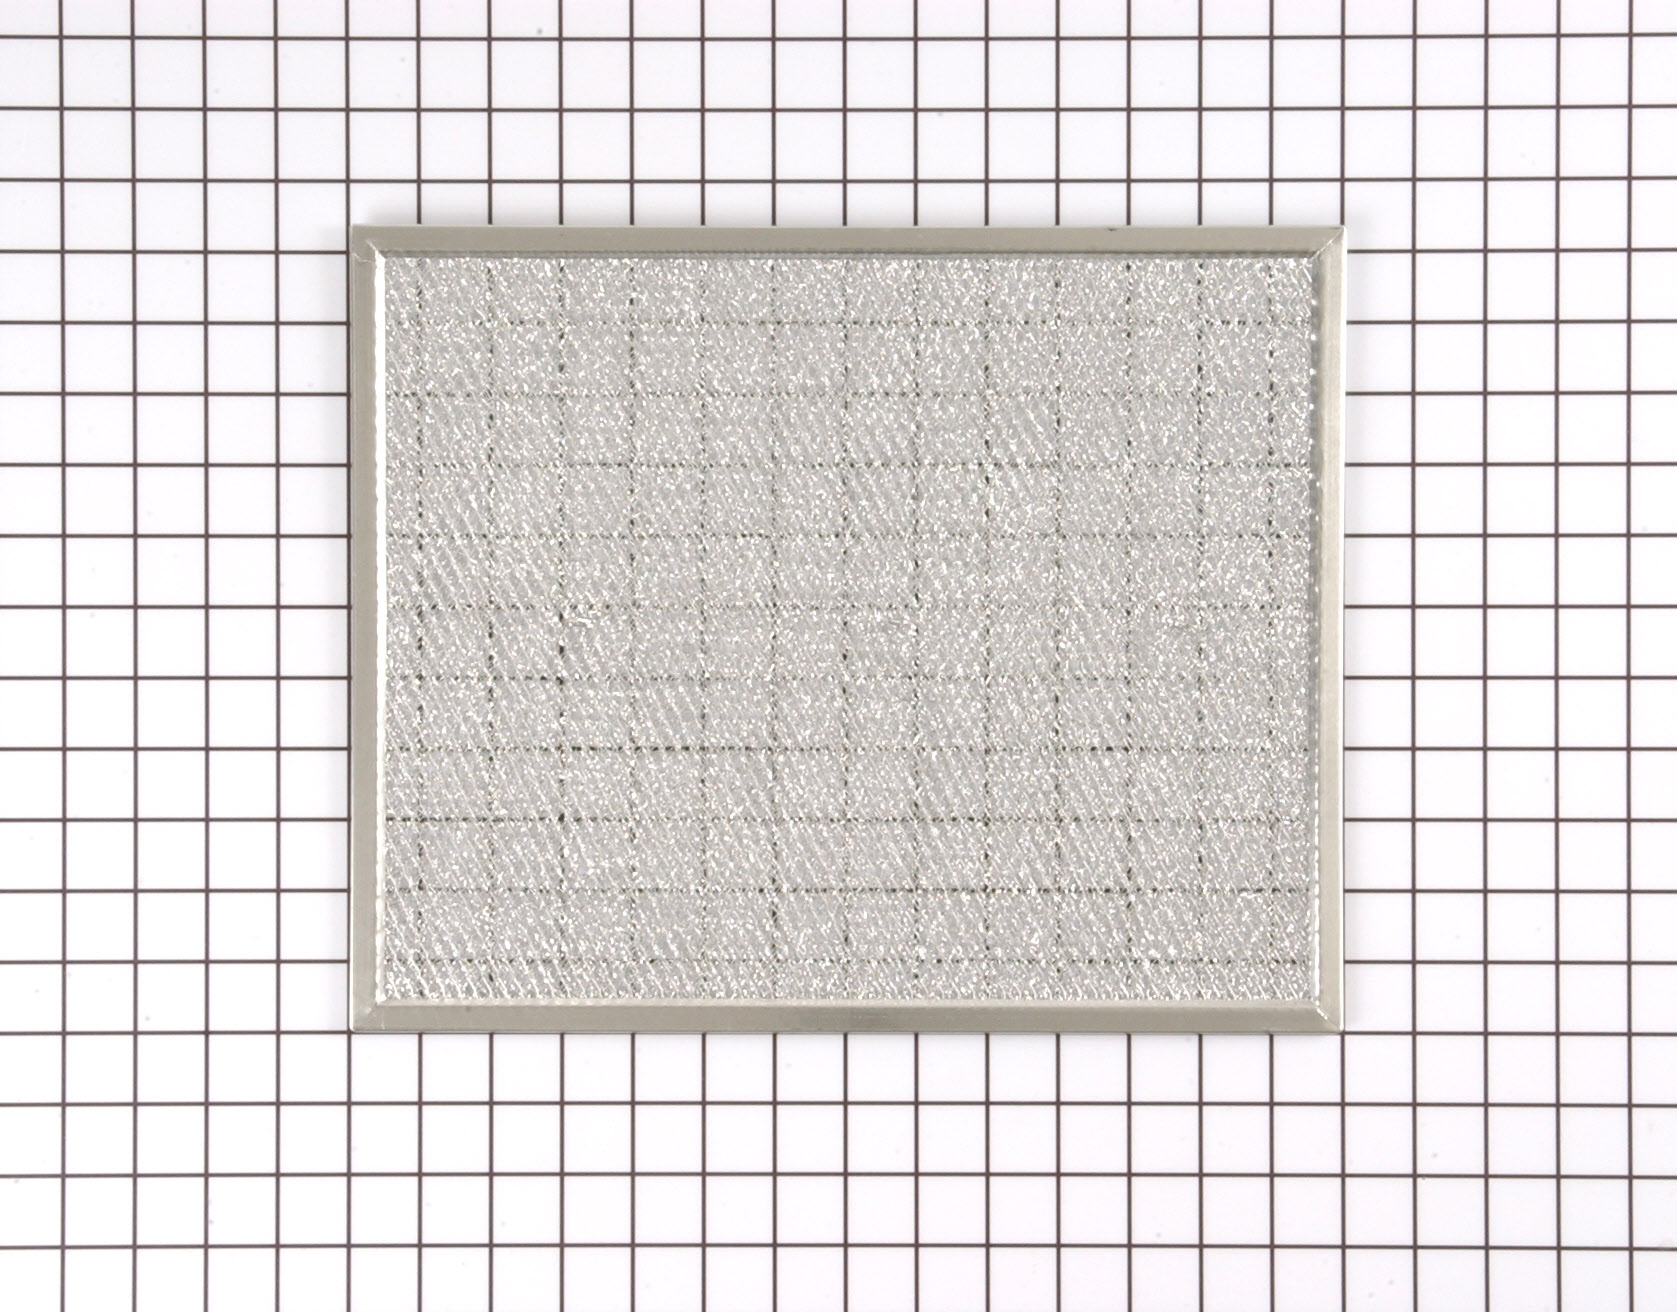 WP707929 Magic Chef Range Stove Oven Part -Grease Filter